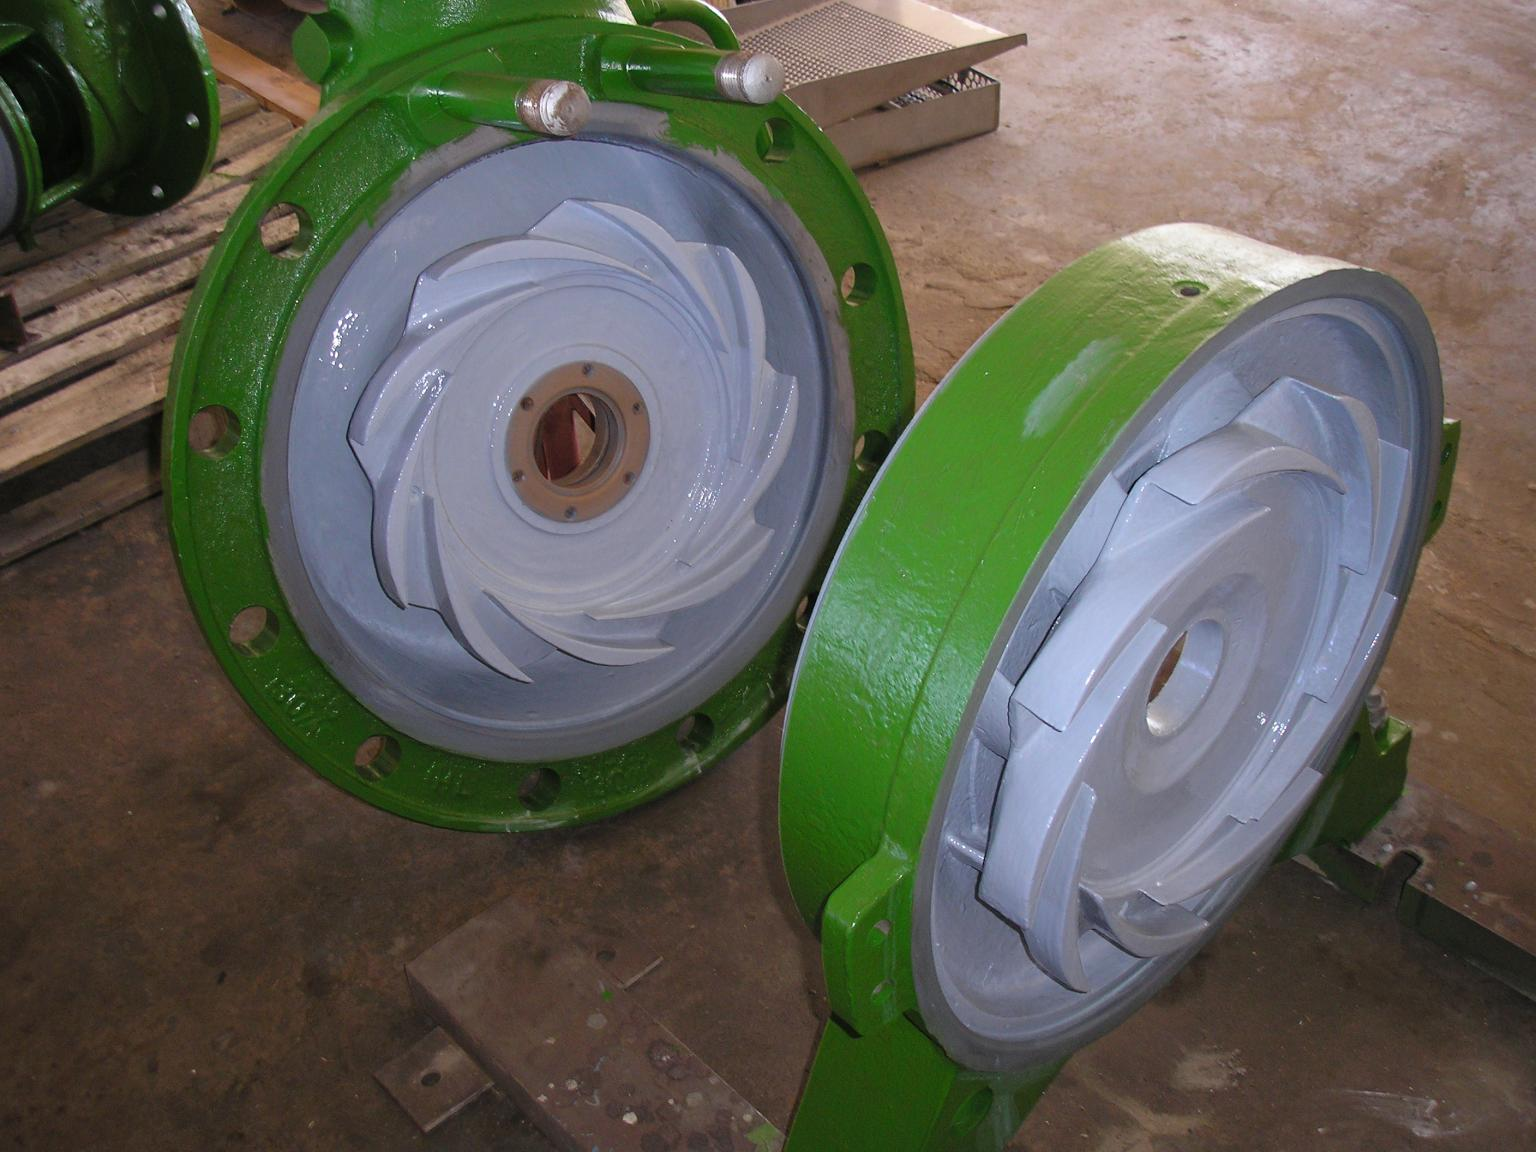 Pumps that have been repaired and coated